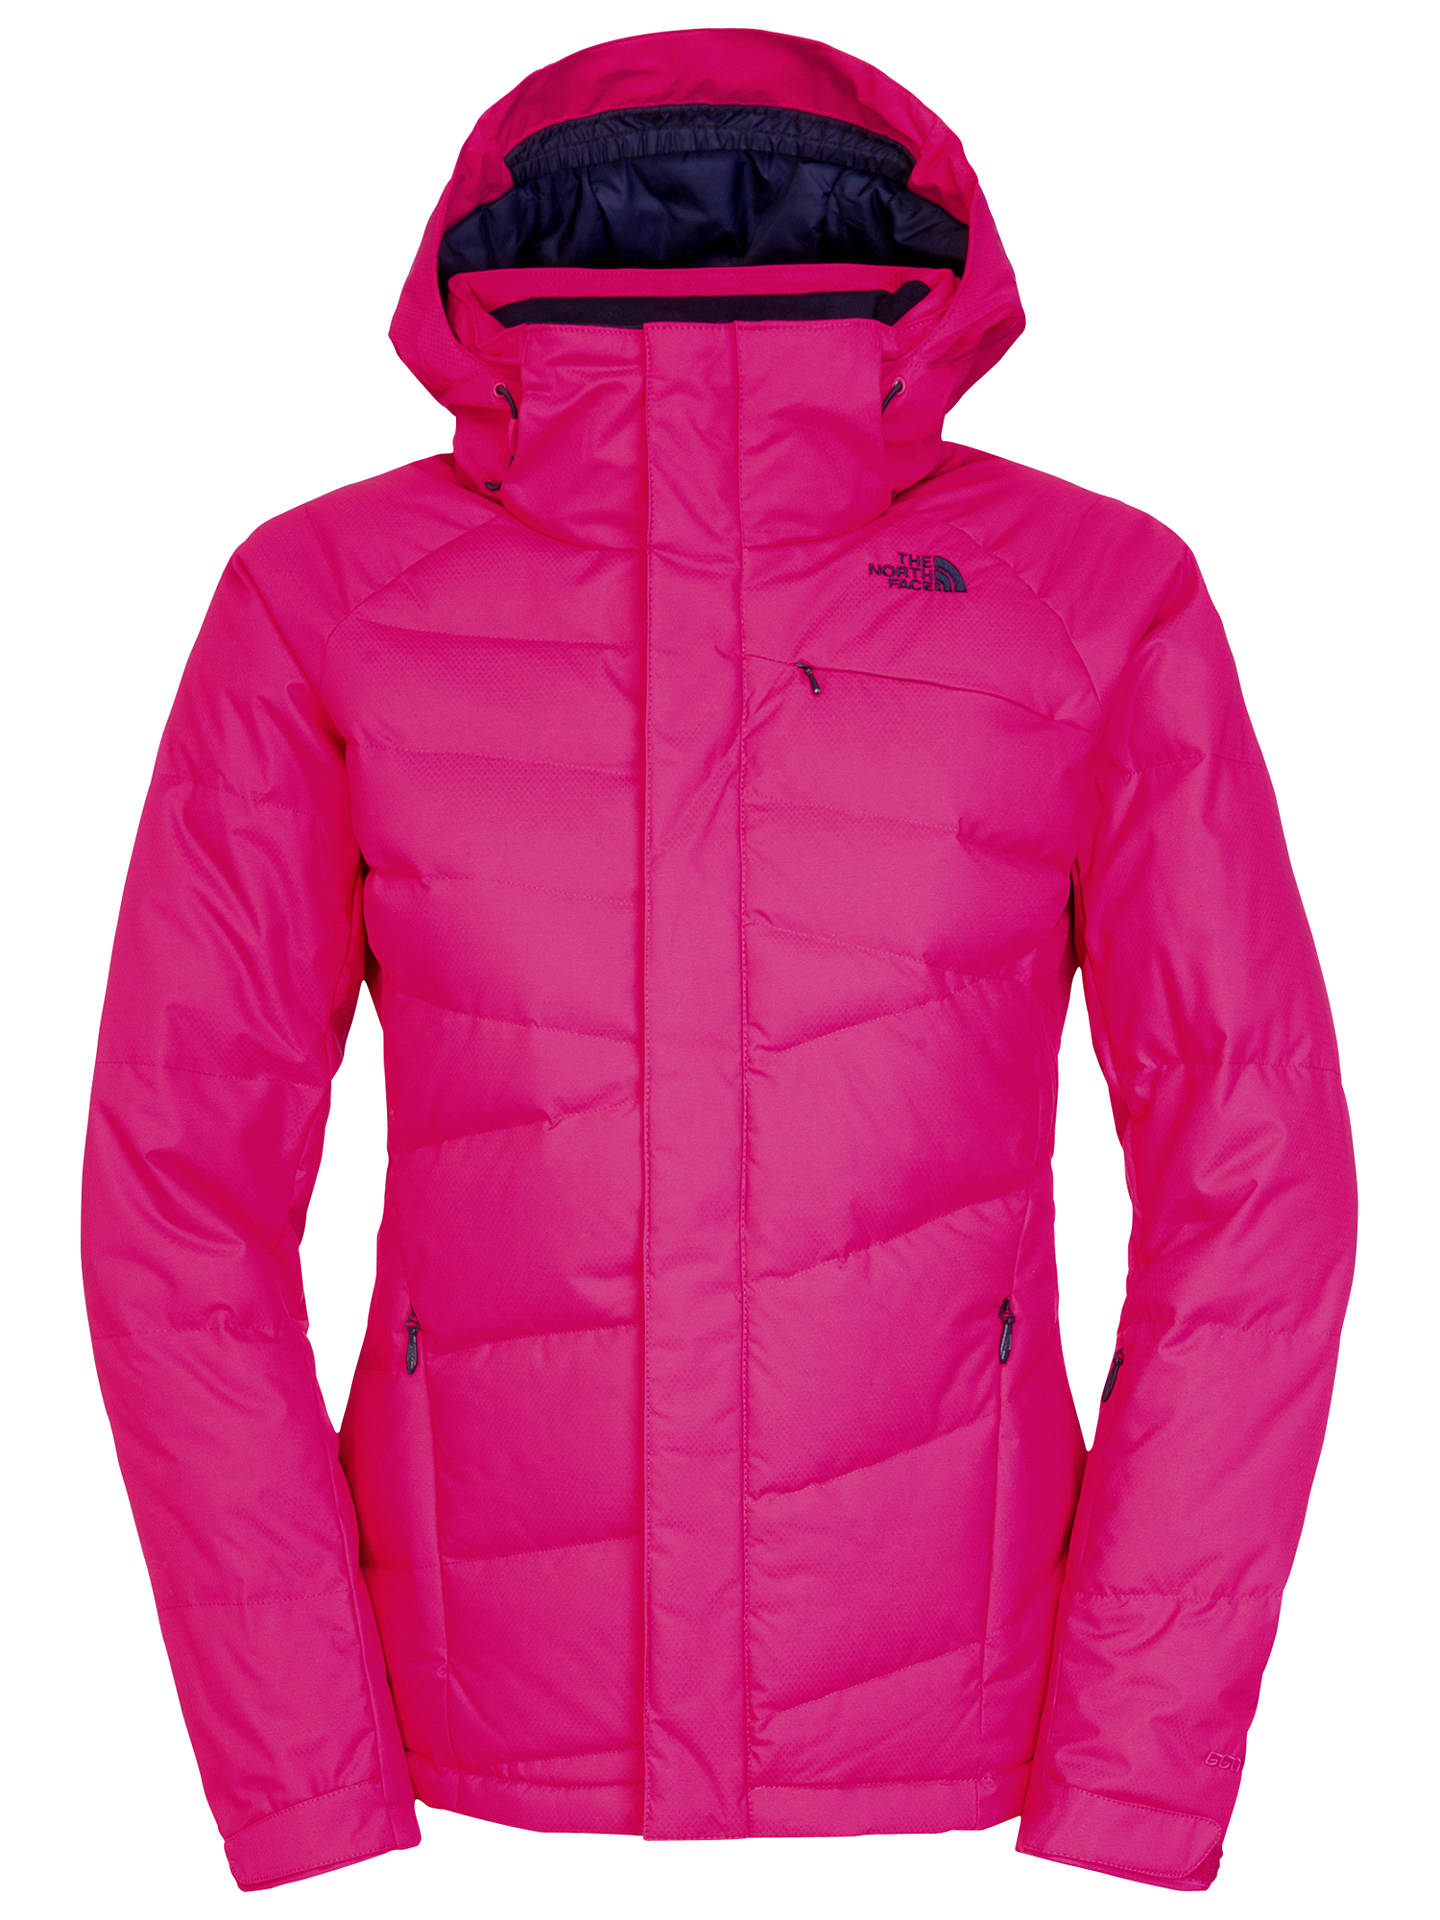 f5bf7b13e The North Face Heavenly Down Jacket, Pink at John Lewis & Partners